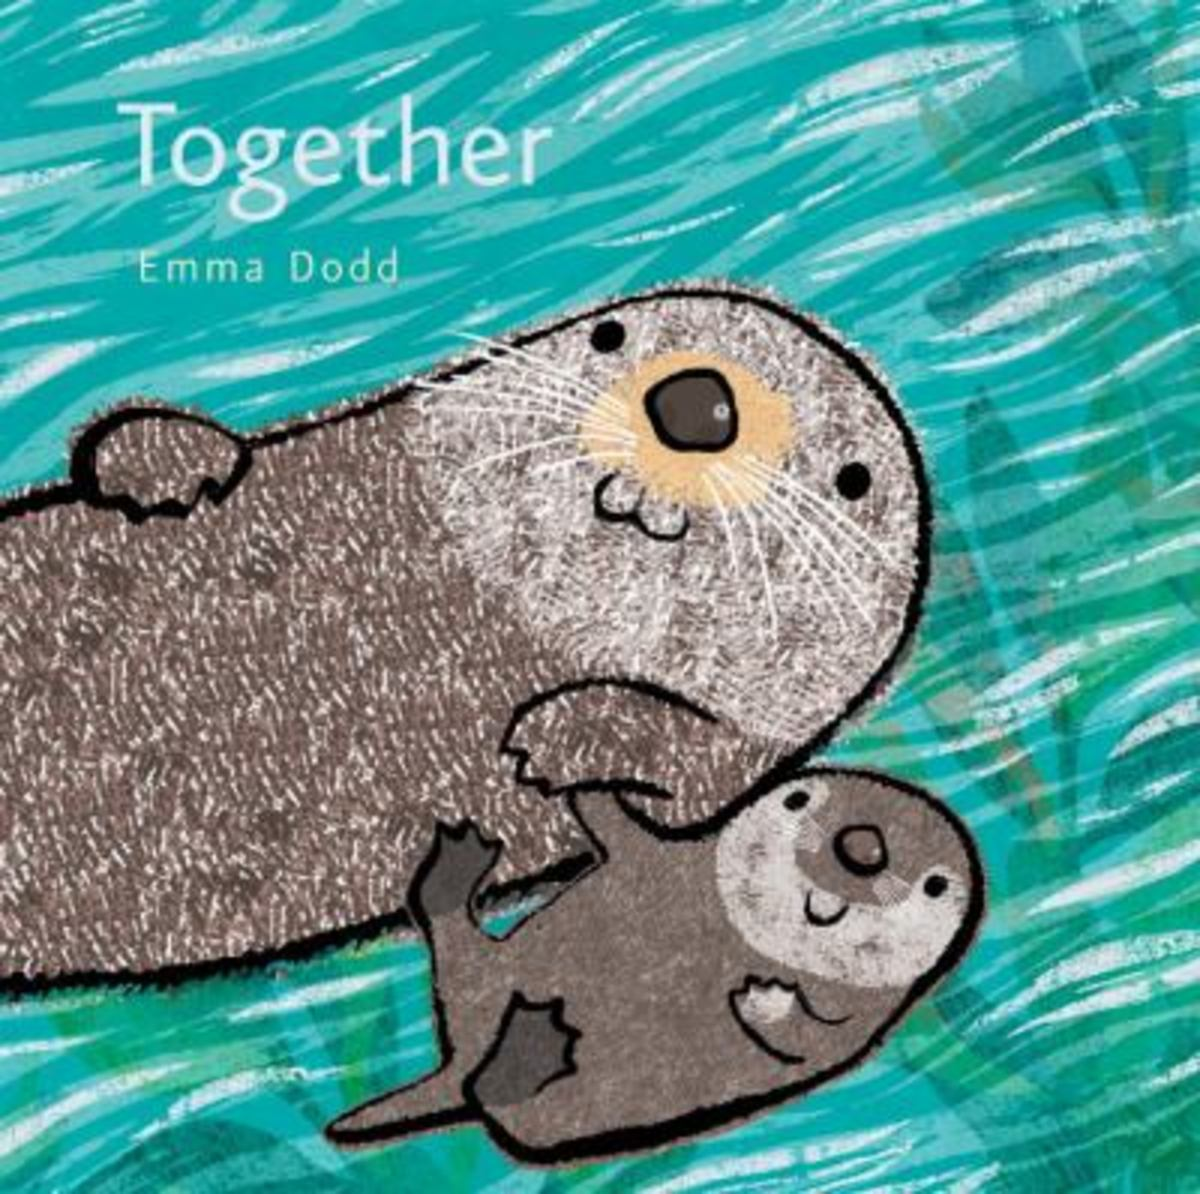 Together Tender Books for Mothers